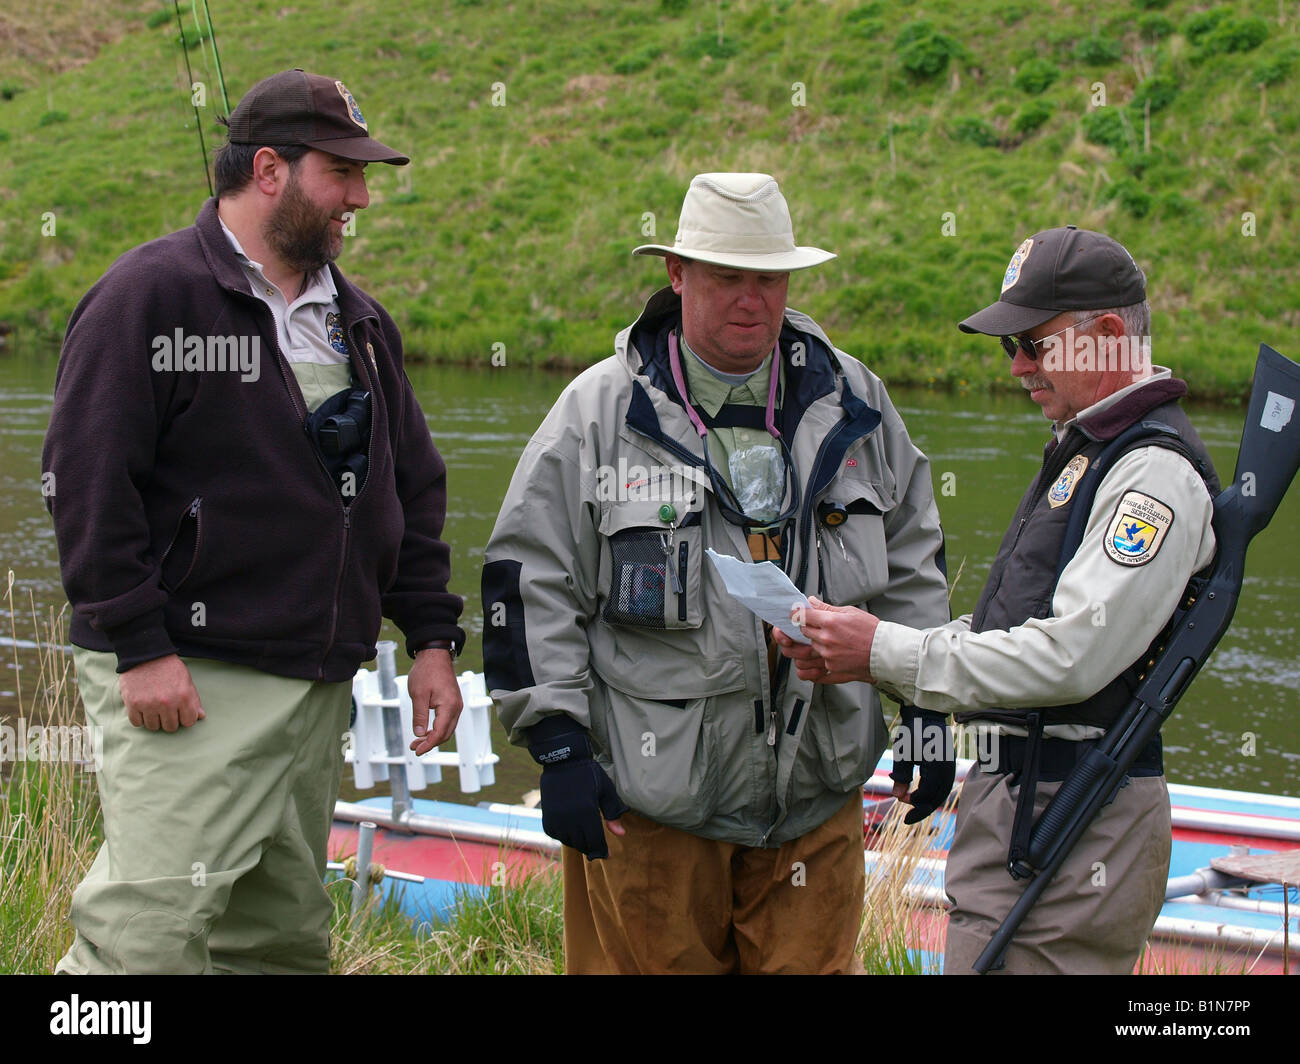 US federal fish and wildlife officers check fisherman's fishing